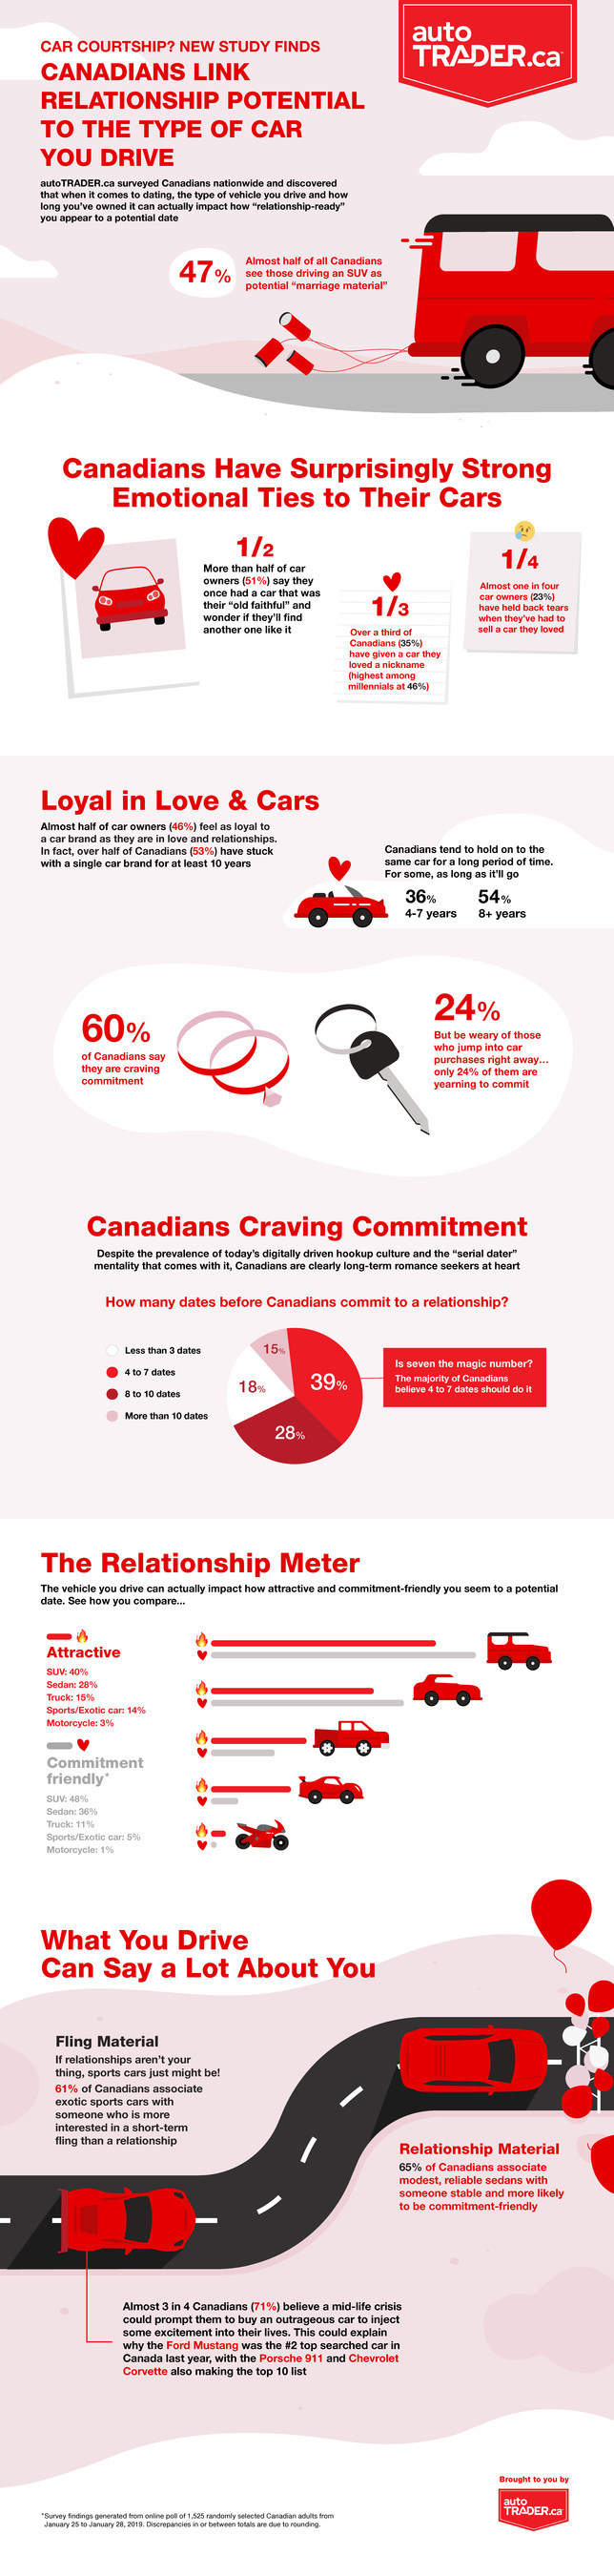 "autoTRADER.ca surveyed Canadians nationwide and discovered that when it comes to dating, the type of vehicle you drive and how long you've owned it can actually impact how ""relationship-ready"" you appear to a potential date (CNW Group/autoTRADER.ca)"